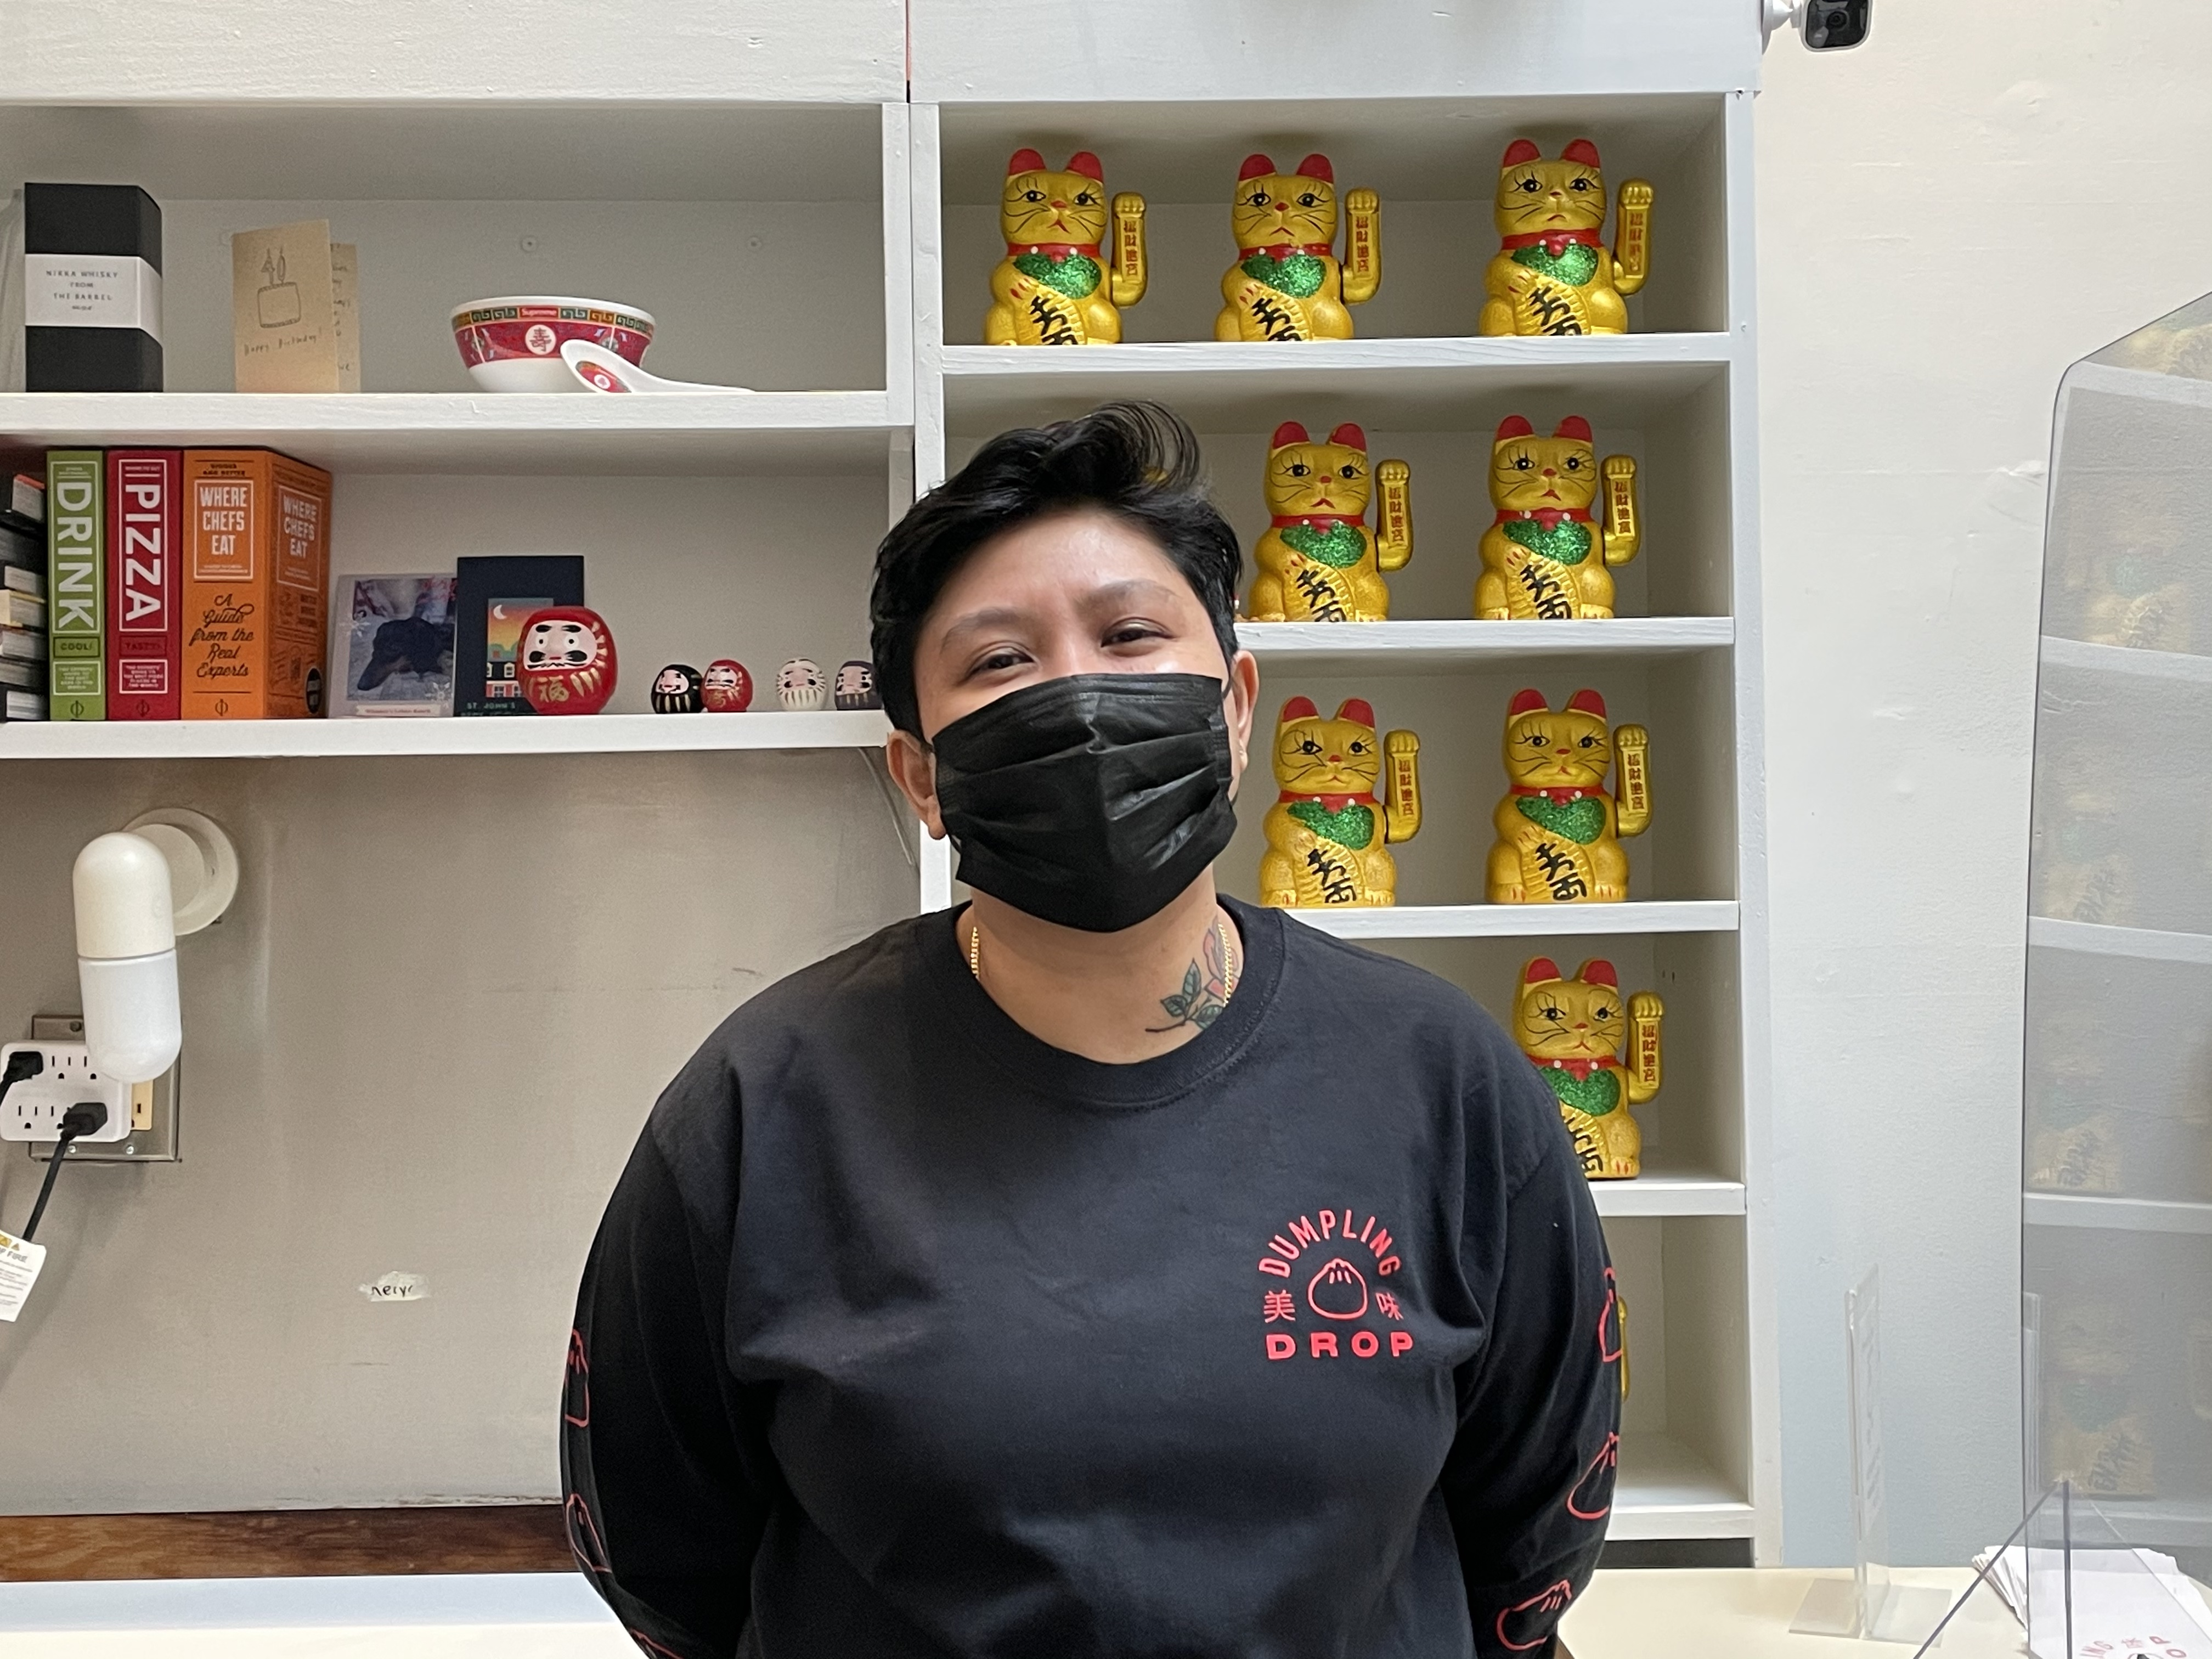 A local pandemic favourite, Dumpling Drop looks to pay community support forward to the Alzheimer Society